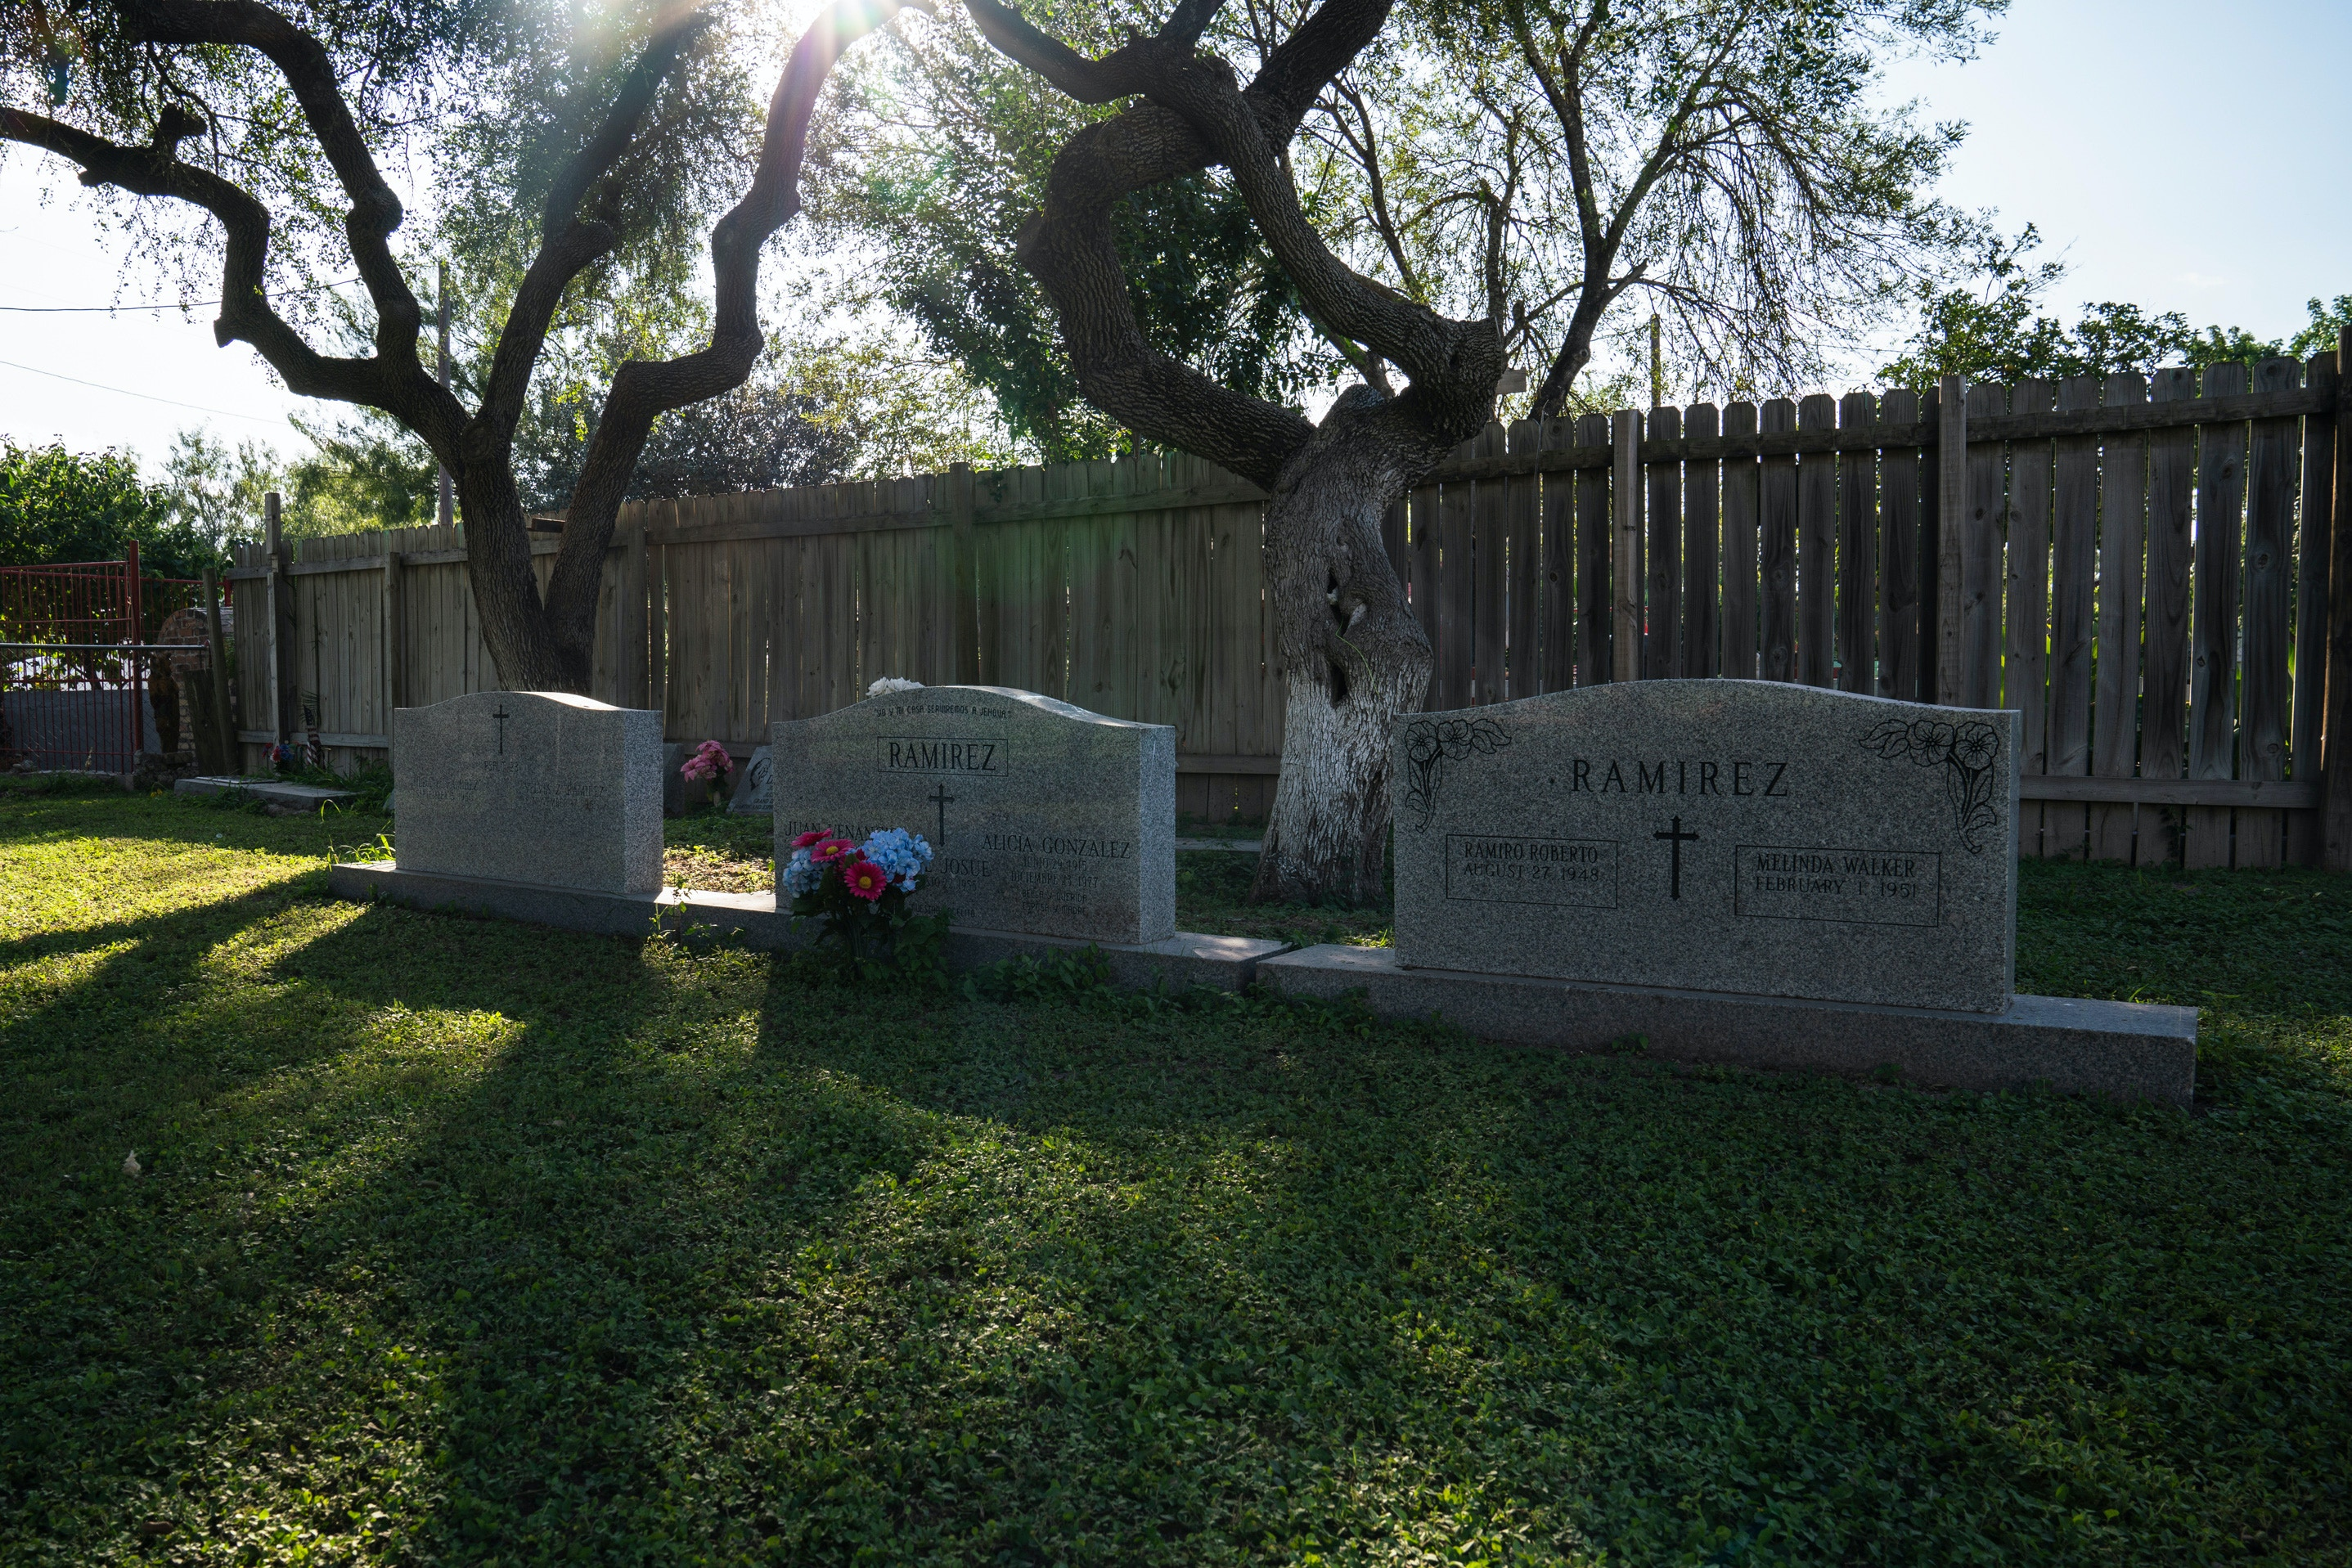 Ramiro Roberto Ramírez's parent's graves at the Martin Jackson Church and Cemetery in San Juan, Tex. on Nov. 6, 2018. Ramírez, his wife and sister will be buried there where their headstones are already engraved with their names. The new proposed wall would leave this property on the south side of it.Photo: Verónica G. Cárdenas for The Intercept